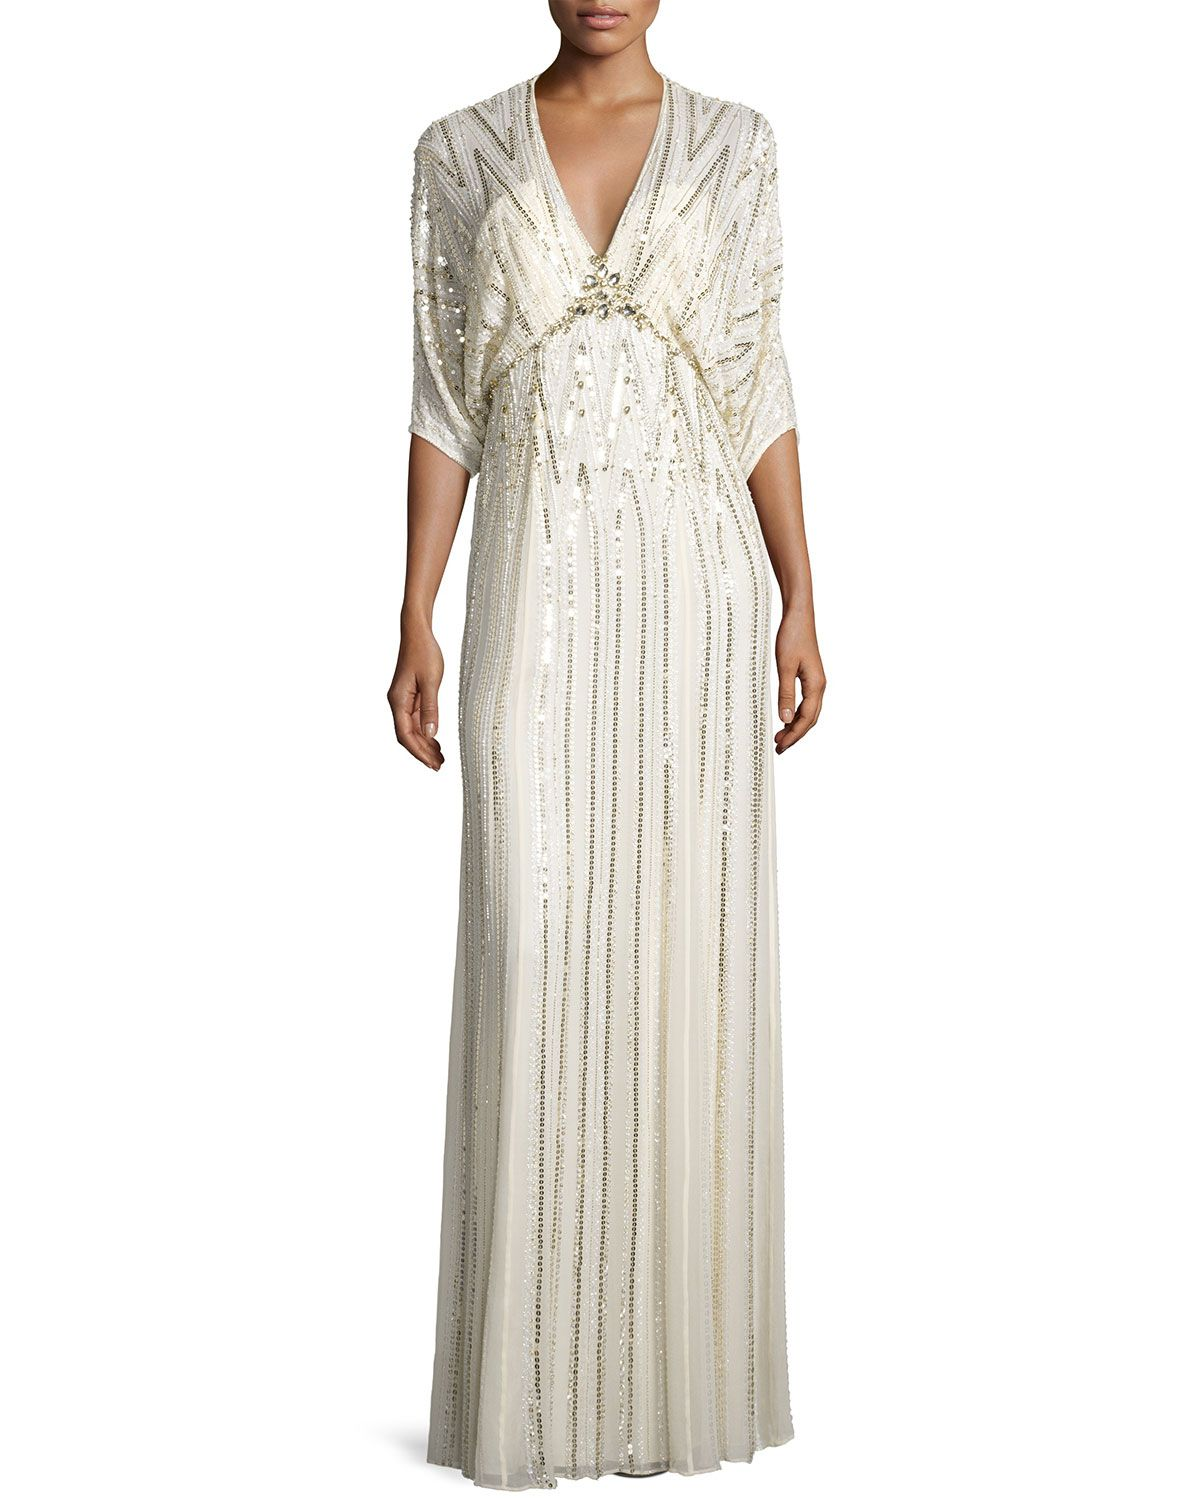 99bd0a09fa286 JENNY PACKHAM SEQUIN-EMBROIDERED BATWING GOWN